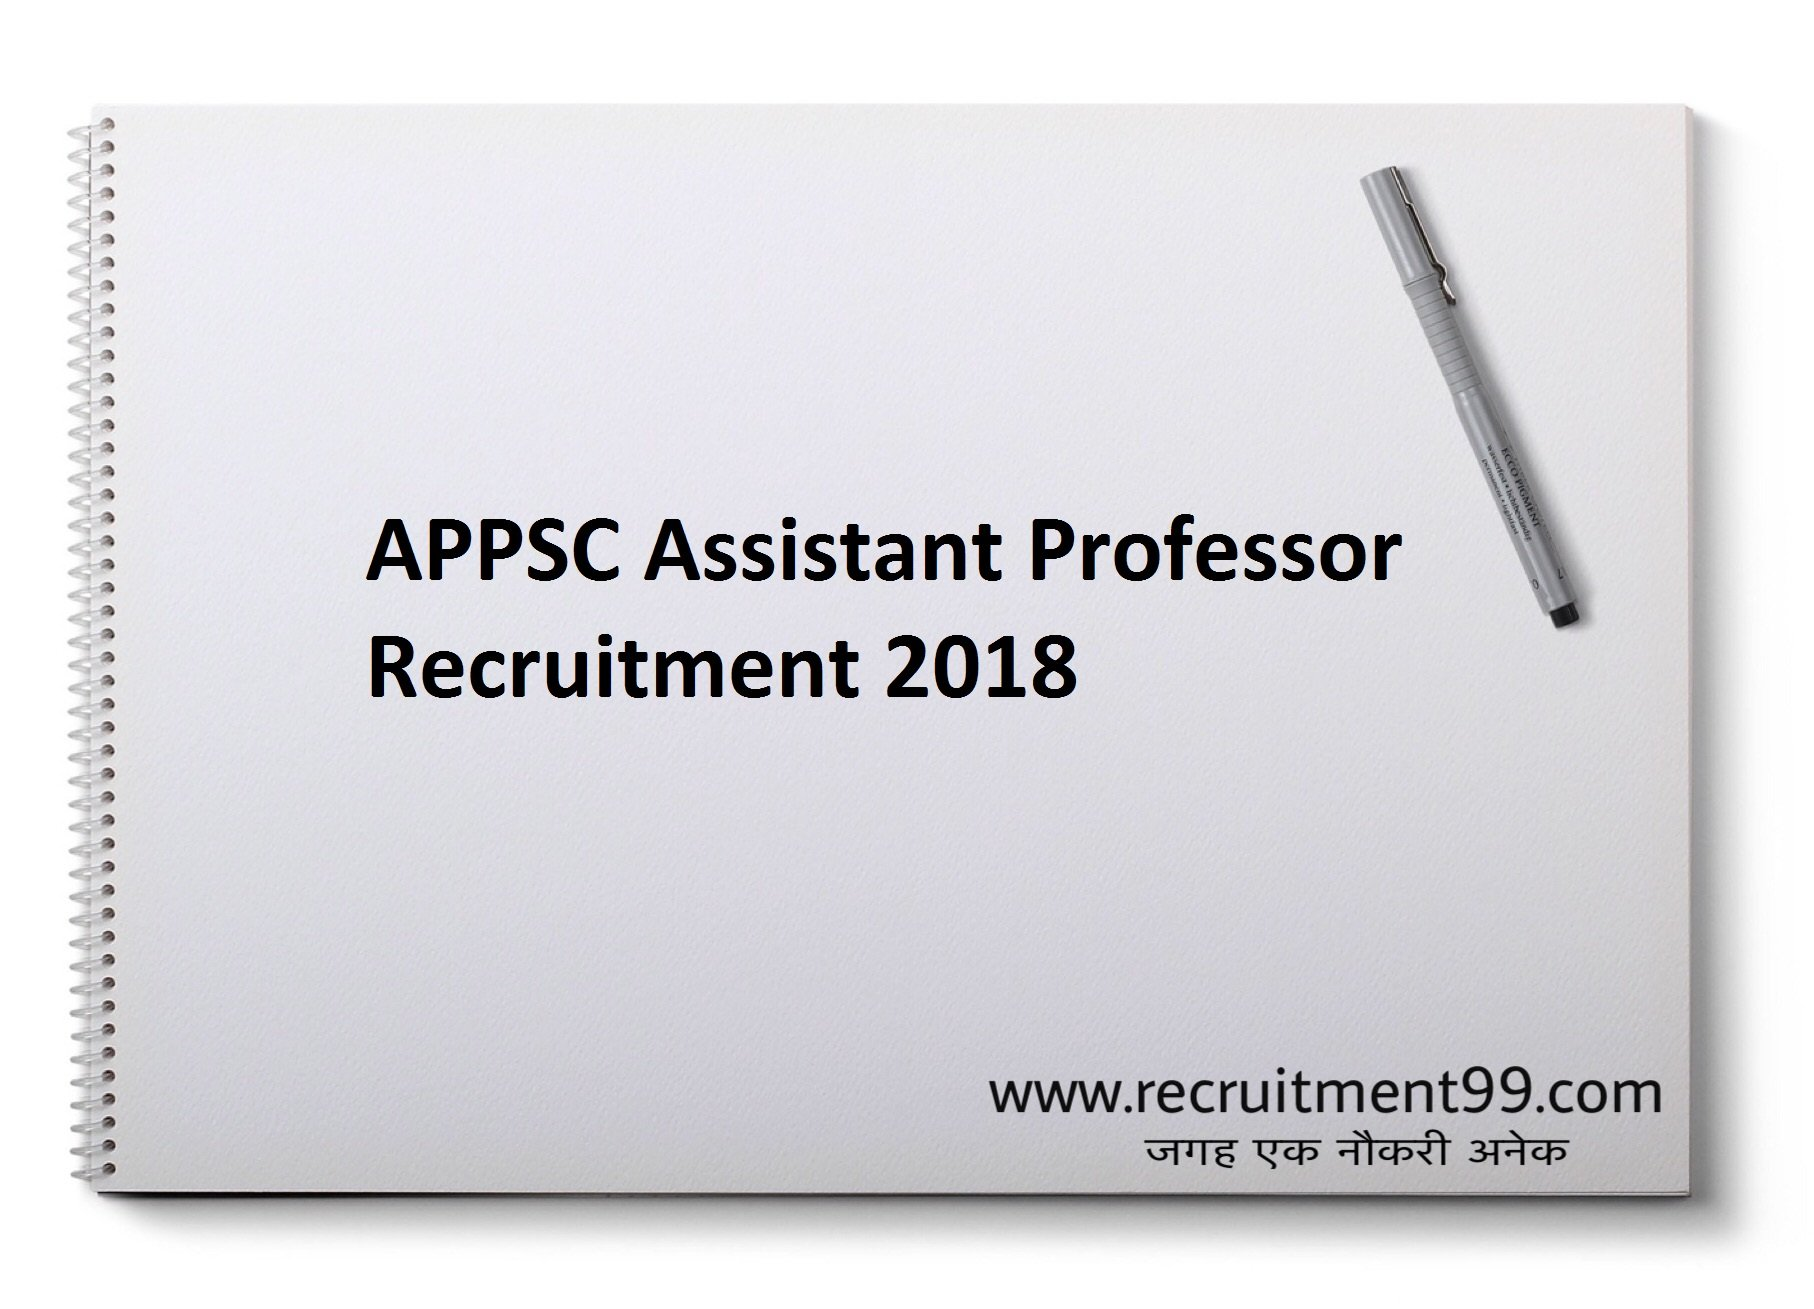 APPSC Assistant Professor Recruitment Admit Card Result 2018